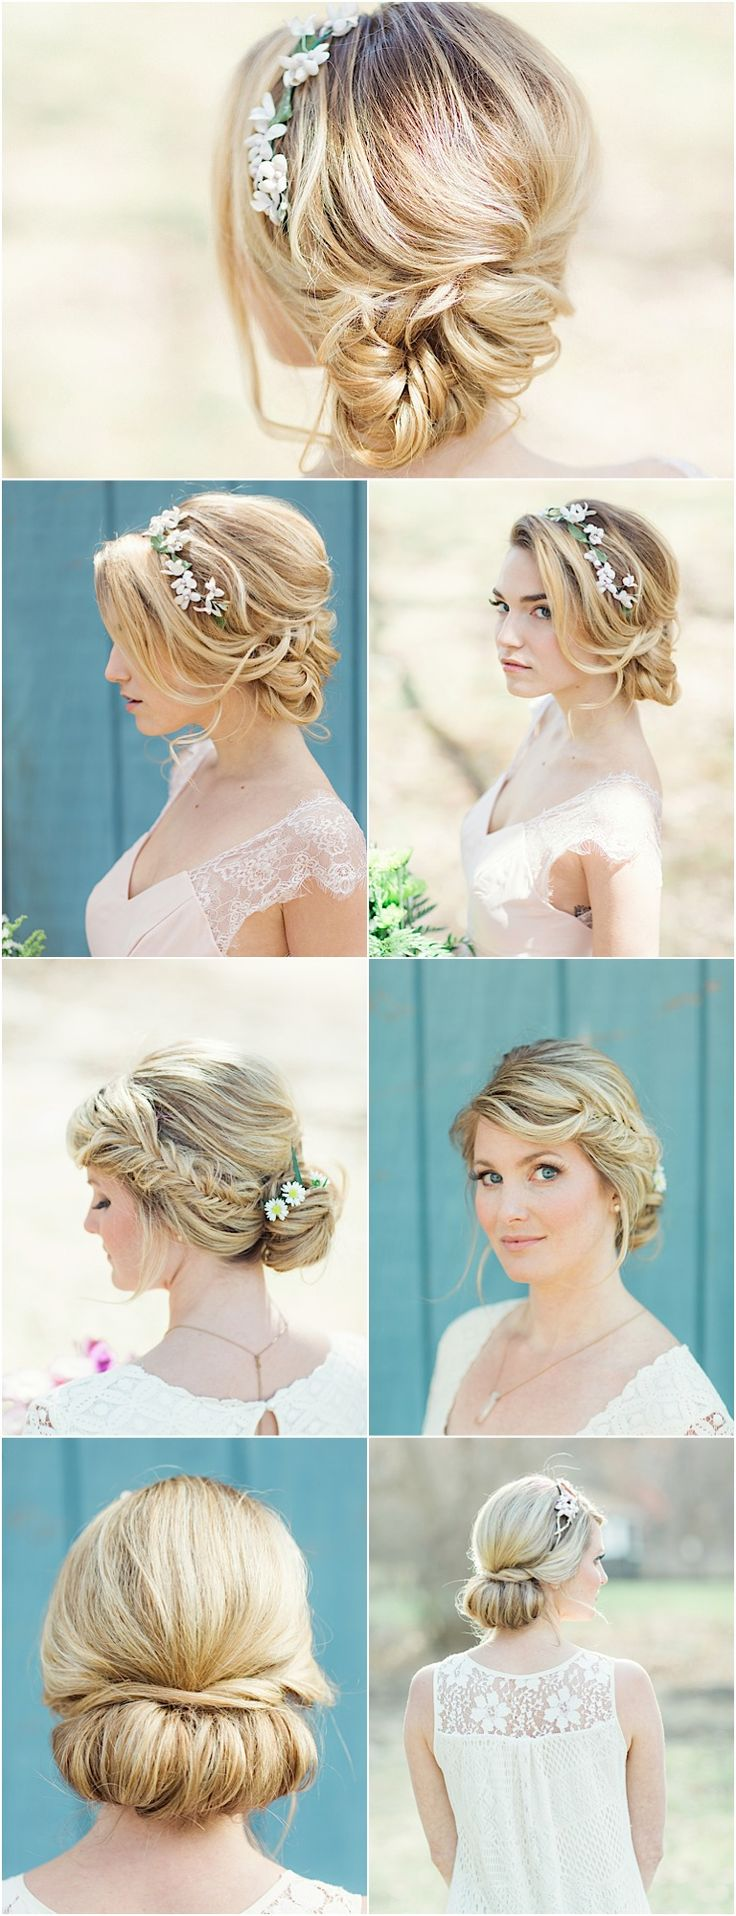 """Written byJackie Schneider Hair stylist and makeup artist Jackie Schneider teamed up with Clean Plate Pictures to showcase a fusion of """"flower power"""" and classic chic bridal looks. The result? Aperfect balance of natural and whimsical bridal beauty. Jackiepoints to her amazing clientele as her source of inspiration. """"My brides typically want as little makeup […]"""